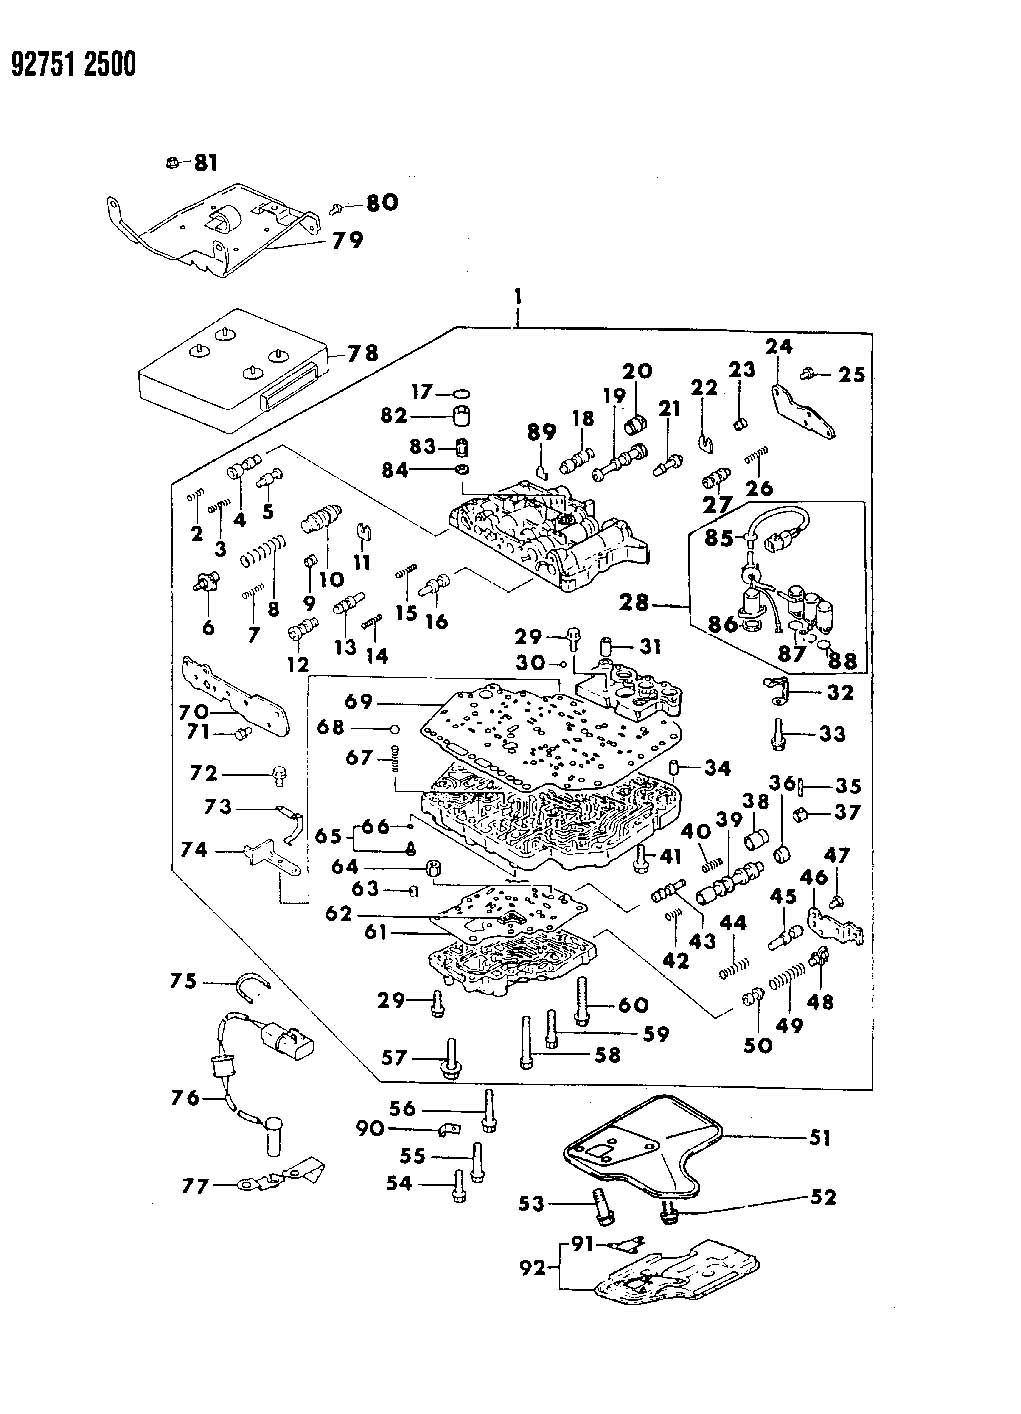 1967 ford c6 wiring diagram within ford wiring and engine